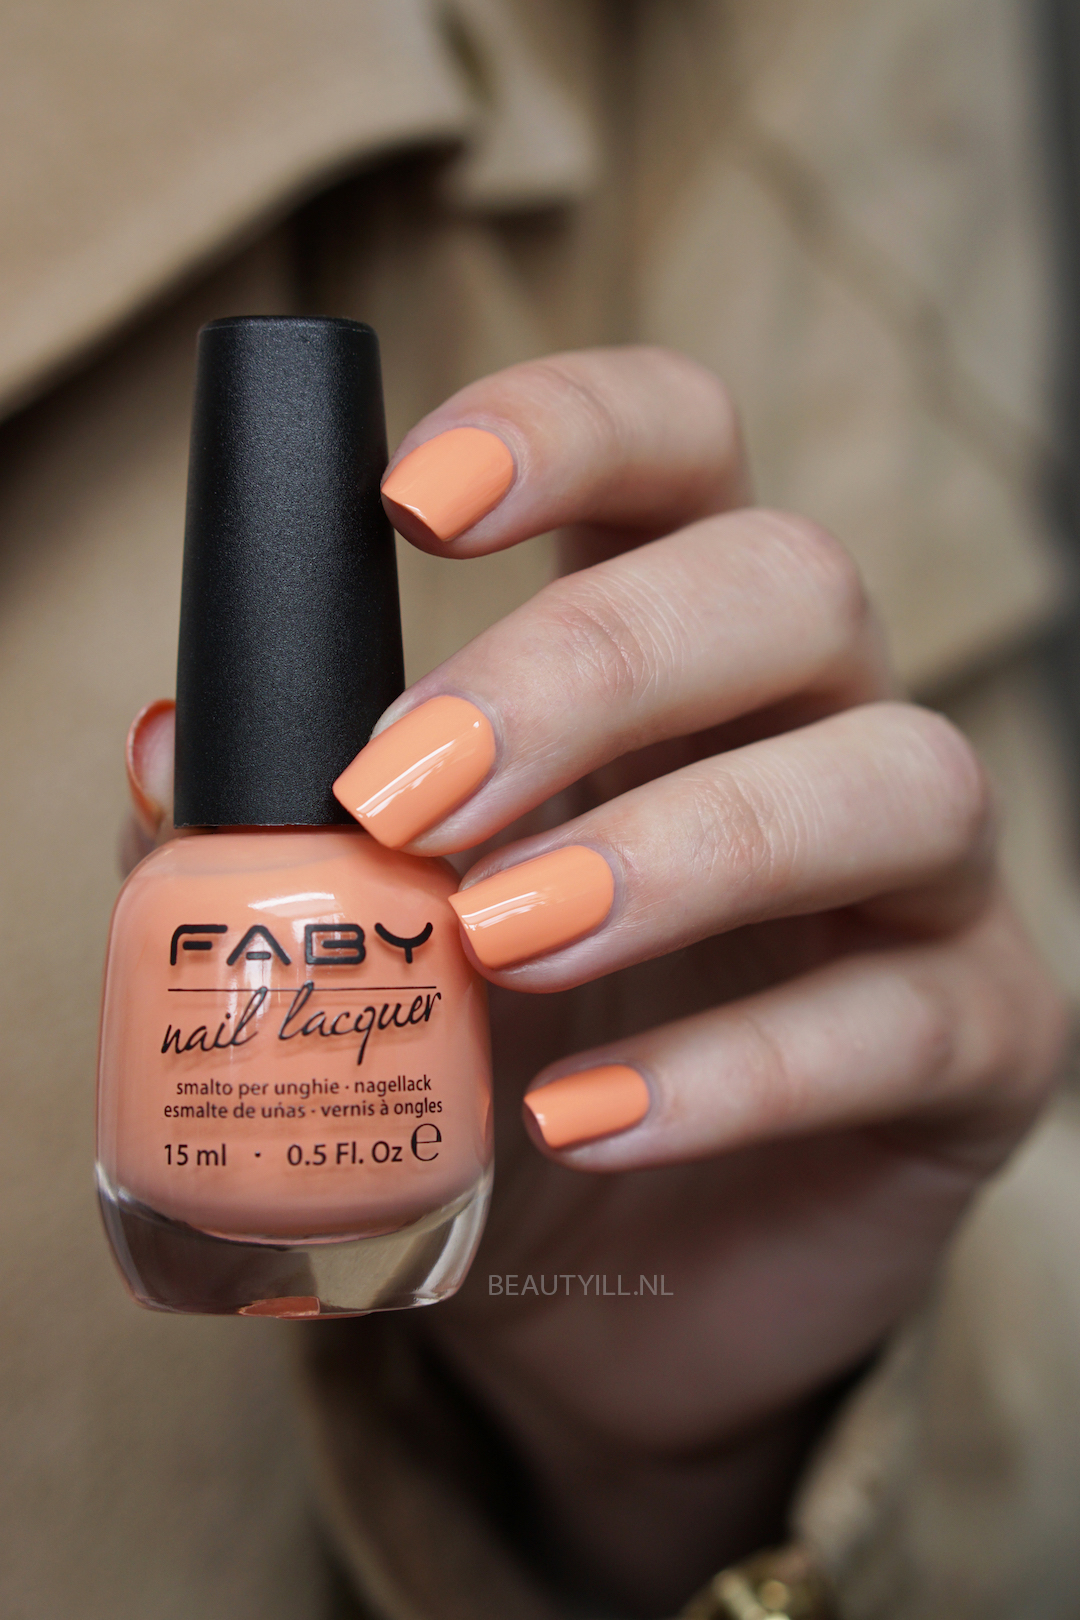 FABY, I'M FABY swatches, fabyana